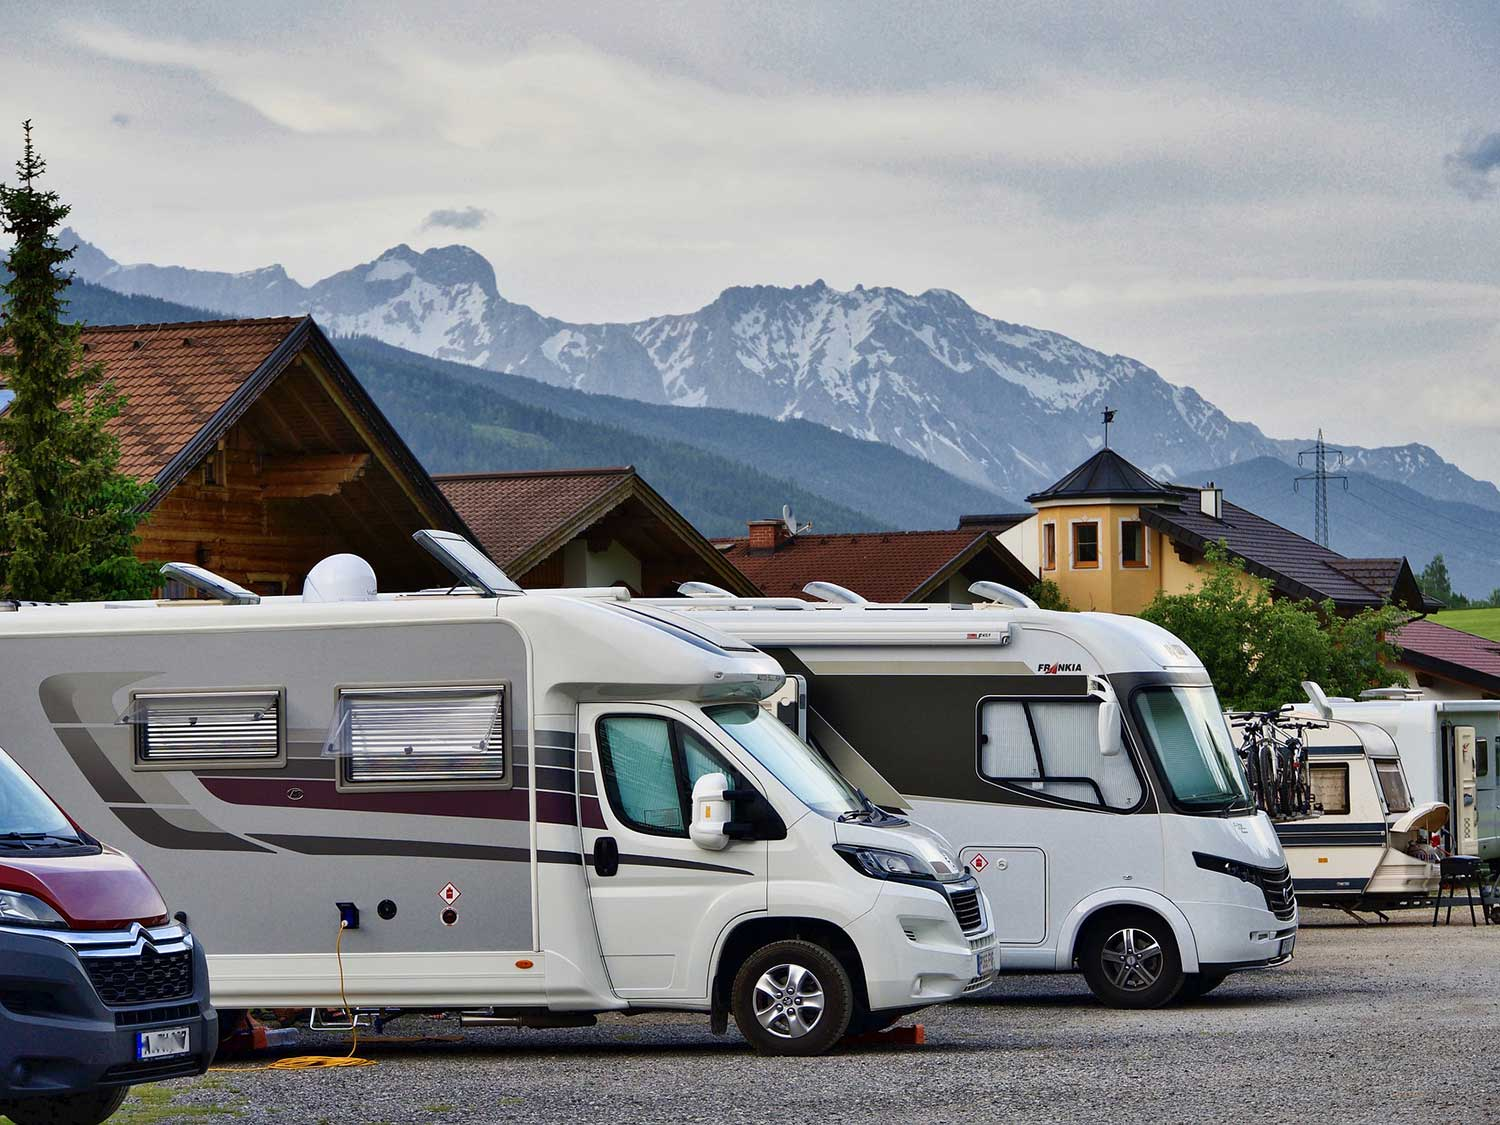 RV in mountains.